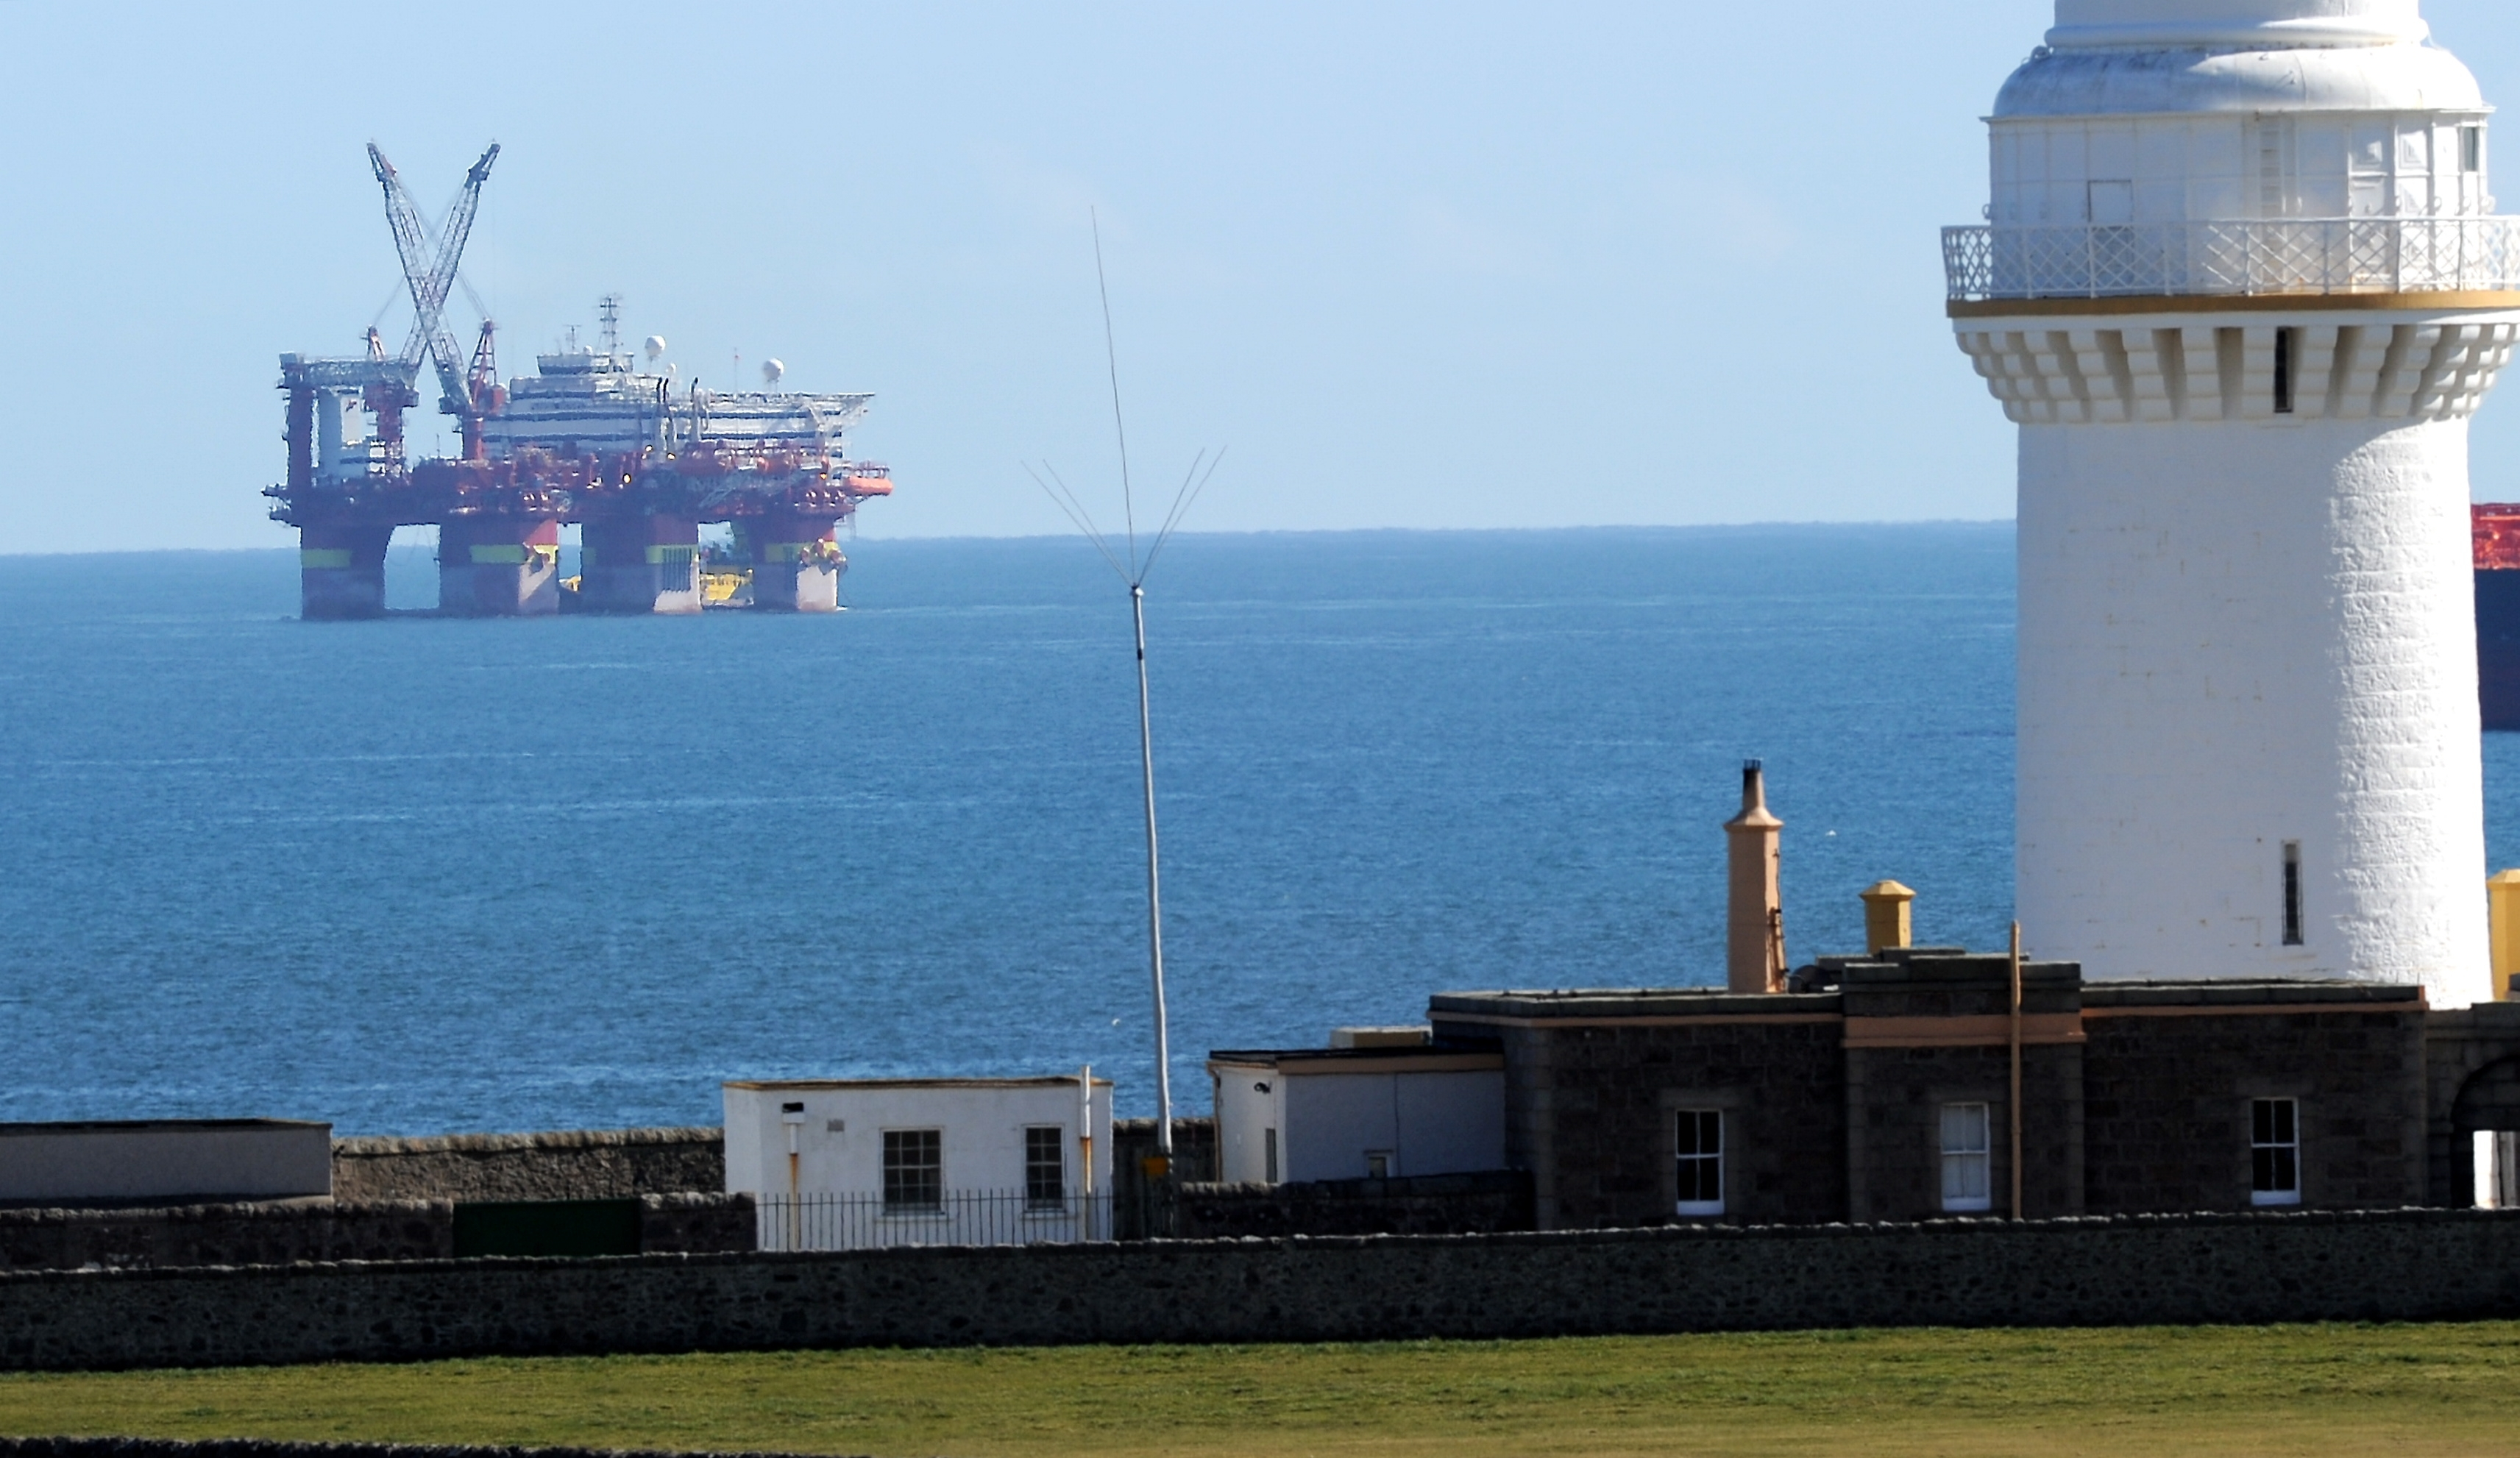 An oil rig waiting outside the harbour in Aberdeen.